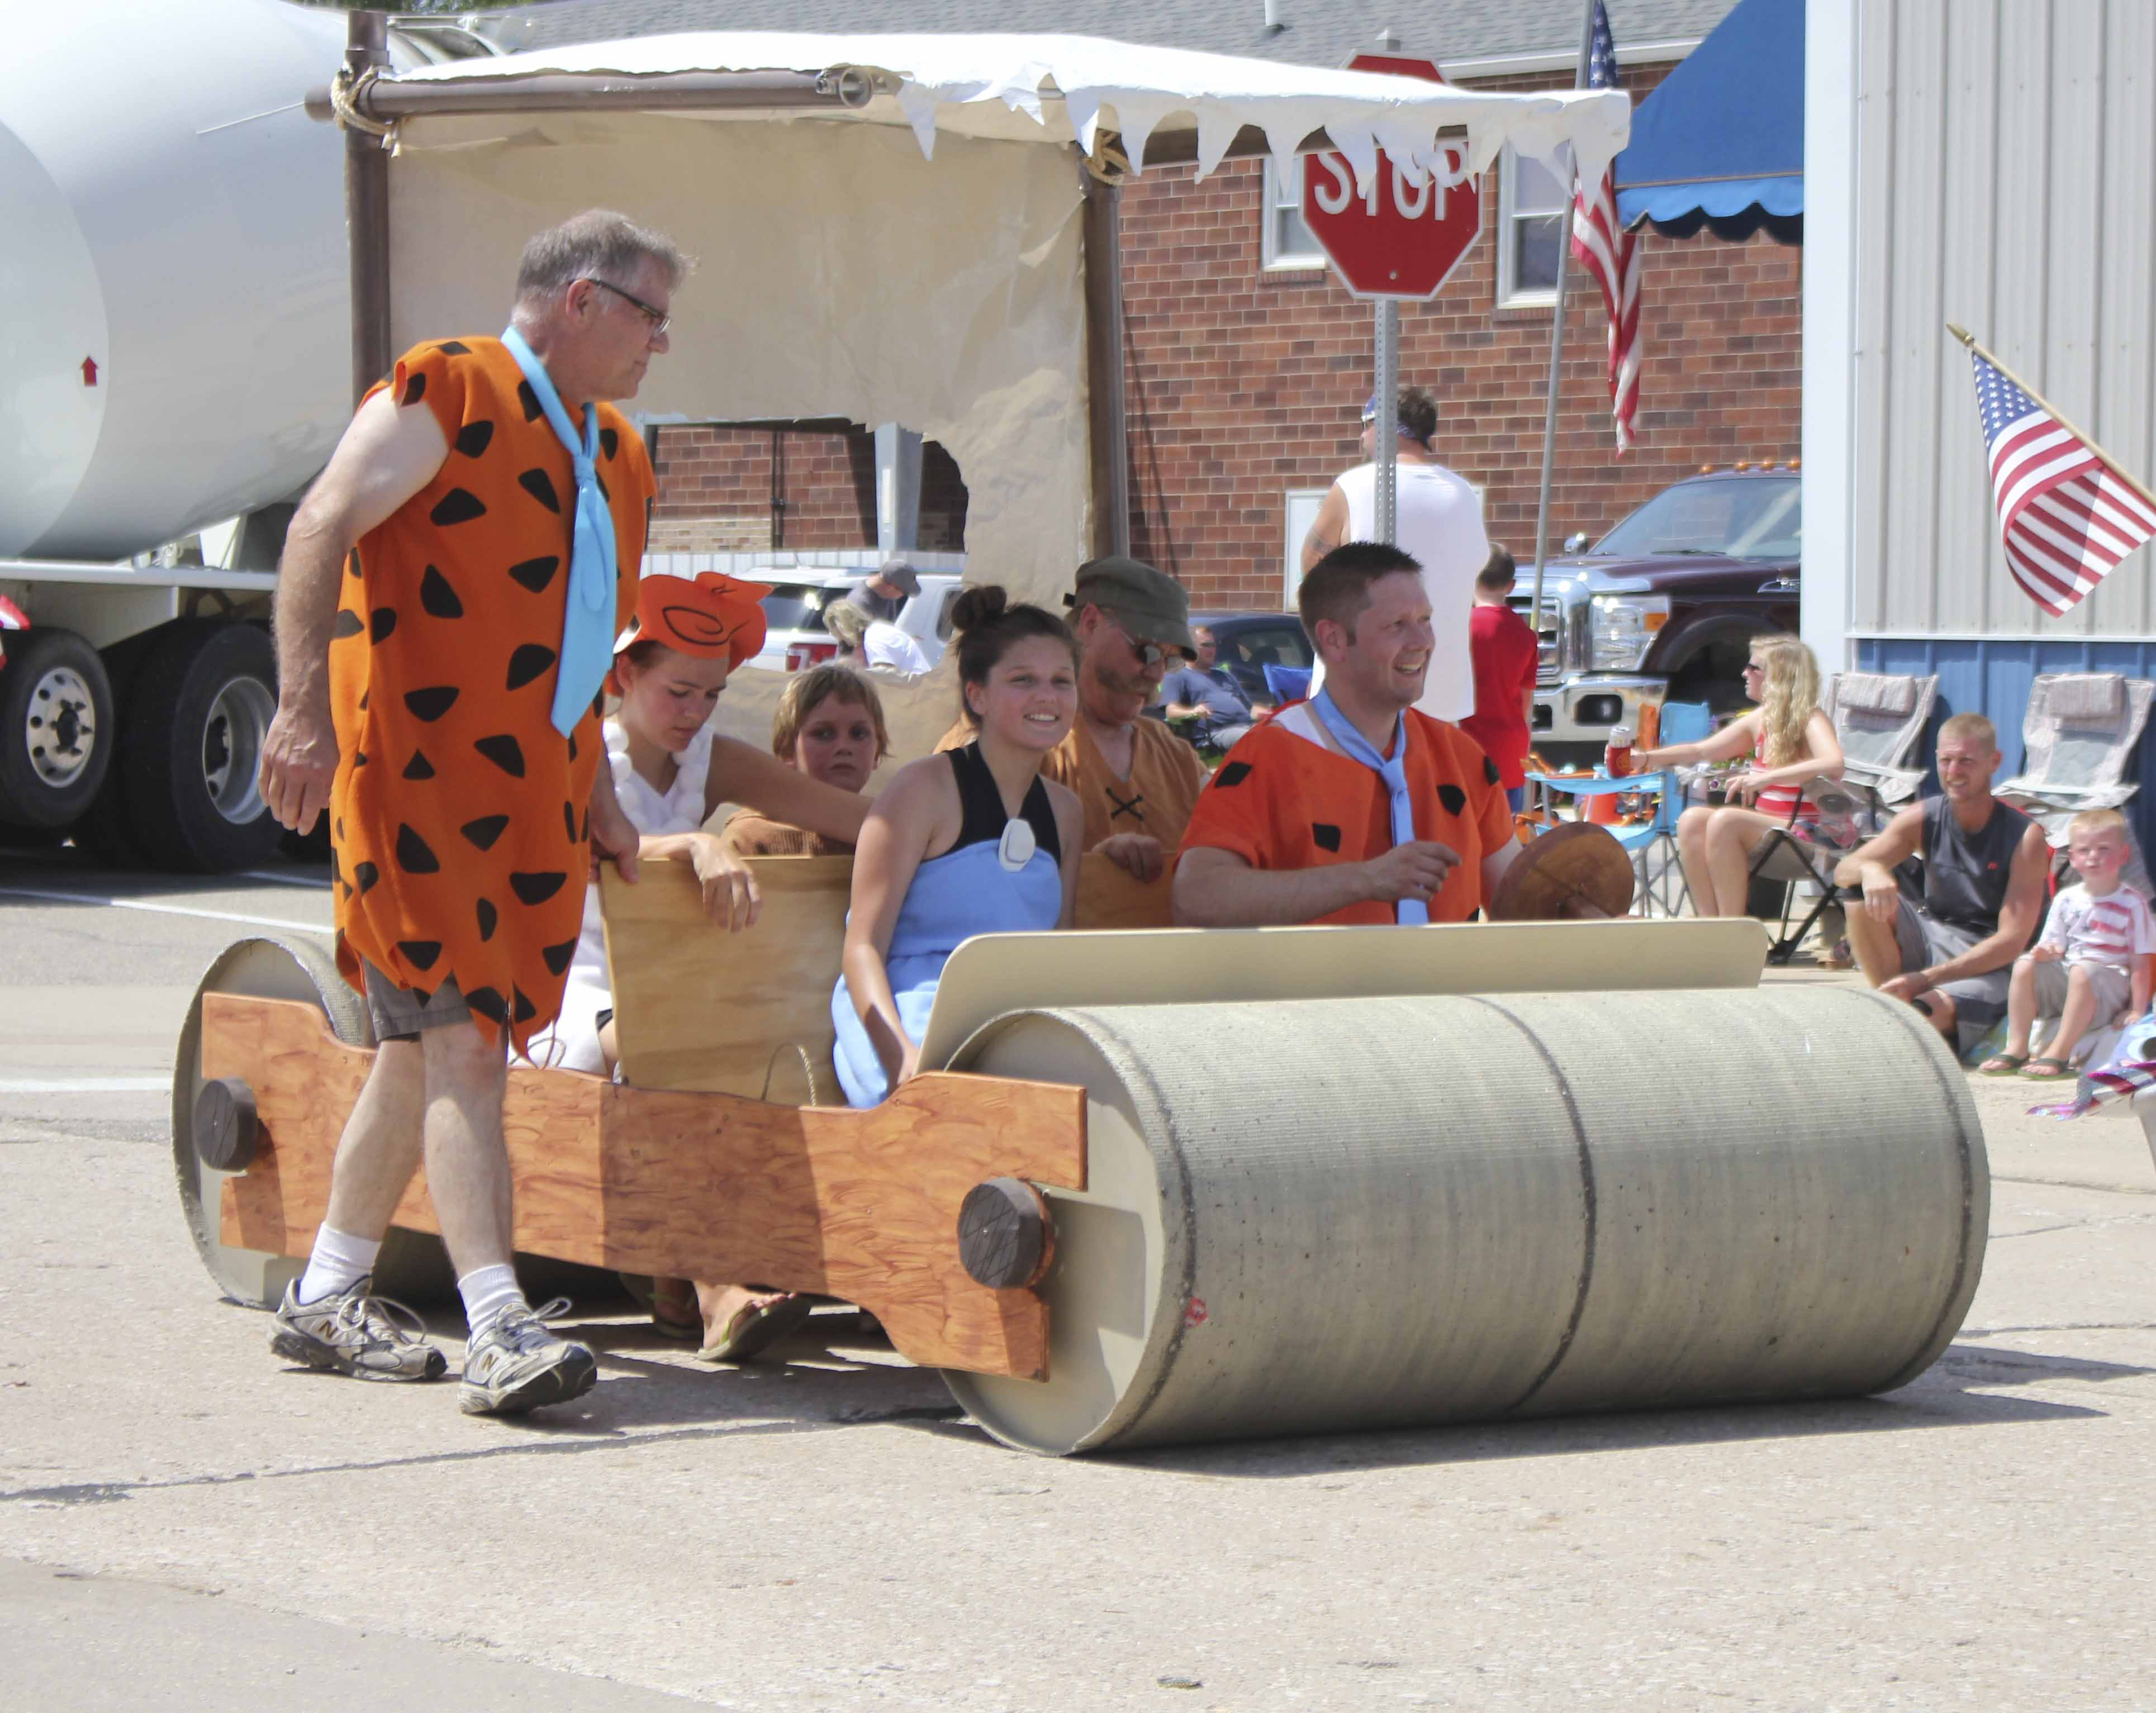 The Schuster family posed as the Flintstones during the Fourth of July Parade. Among them, standing at left: Peter Schuster. Seated in front are (from left) Grace and Andy Schuster. Seated in the back are Sophia, Roman and Paul Schuster.